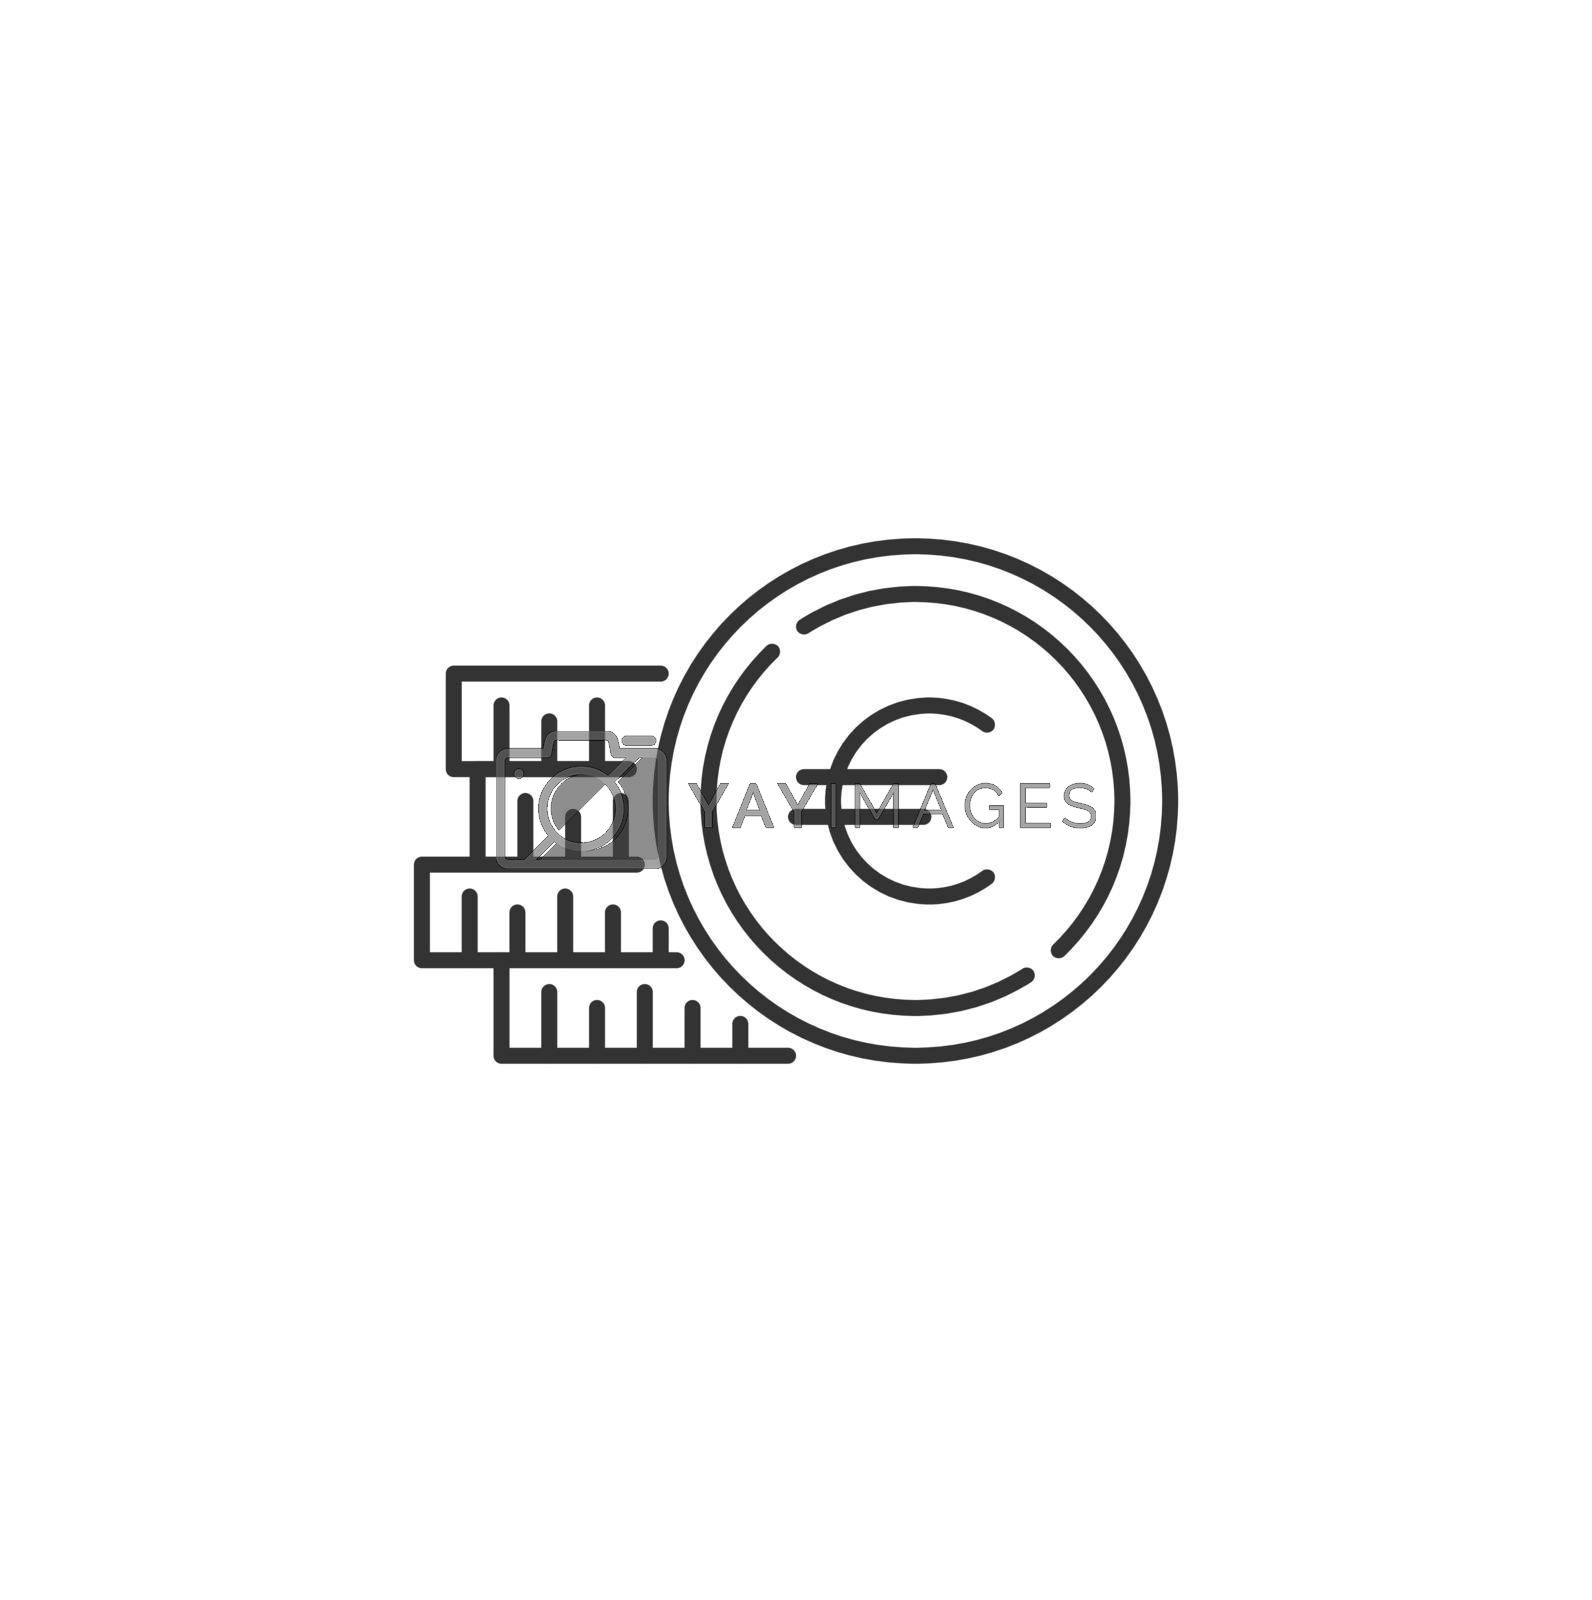 Coins Stack with Euro Related Vector Line Icon. Sign Isolated on the White Background. Editable Stroke EPS file. Vector illustration.